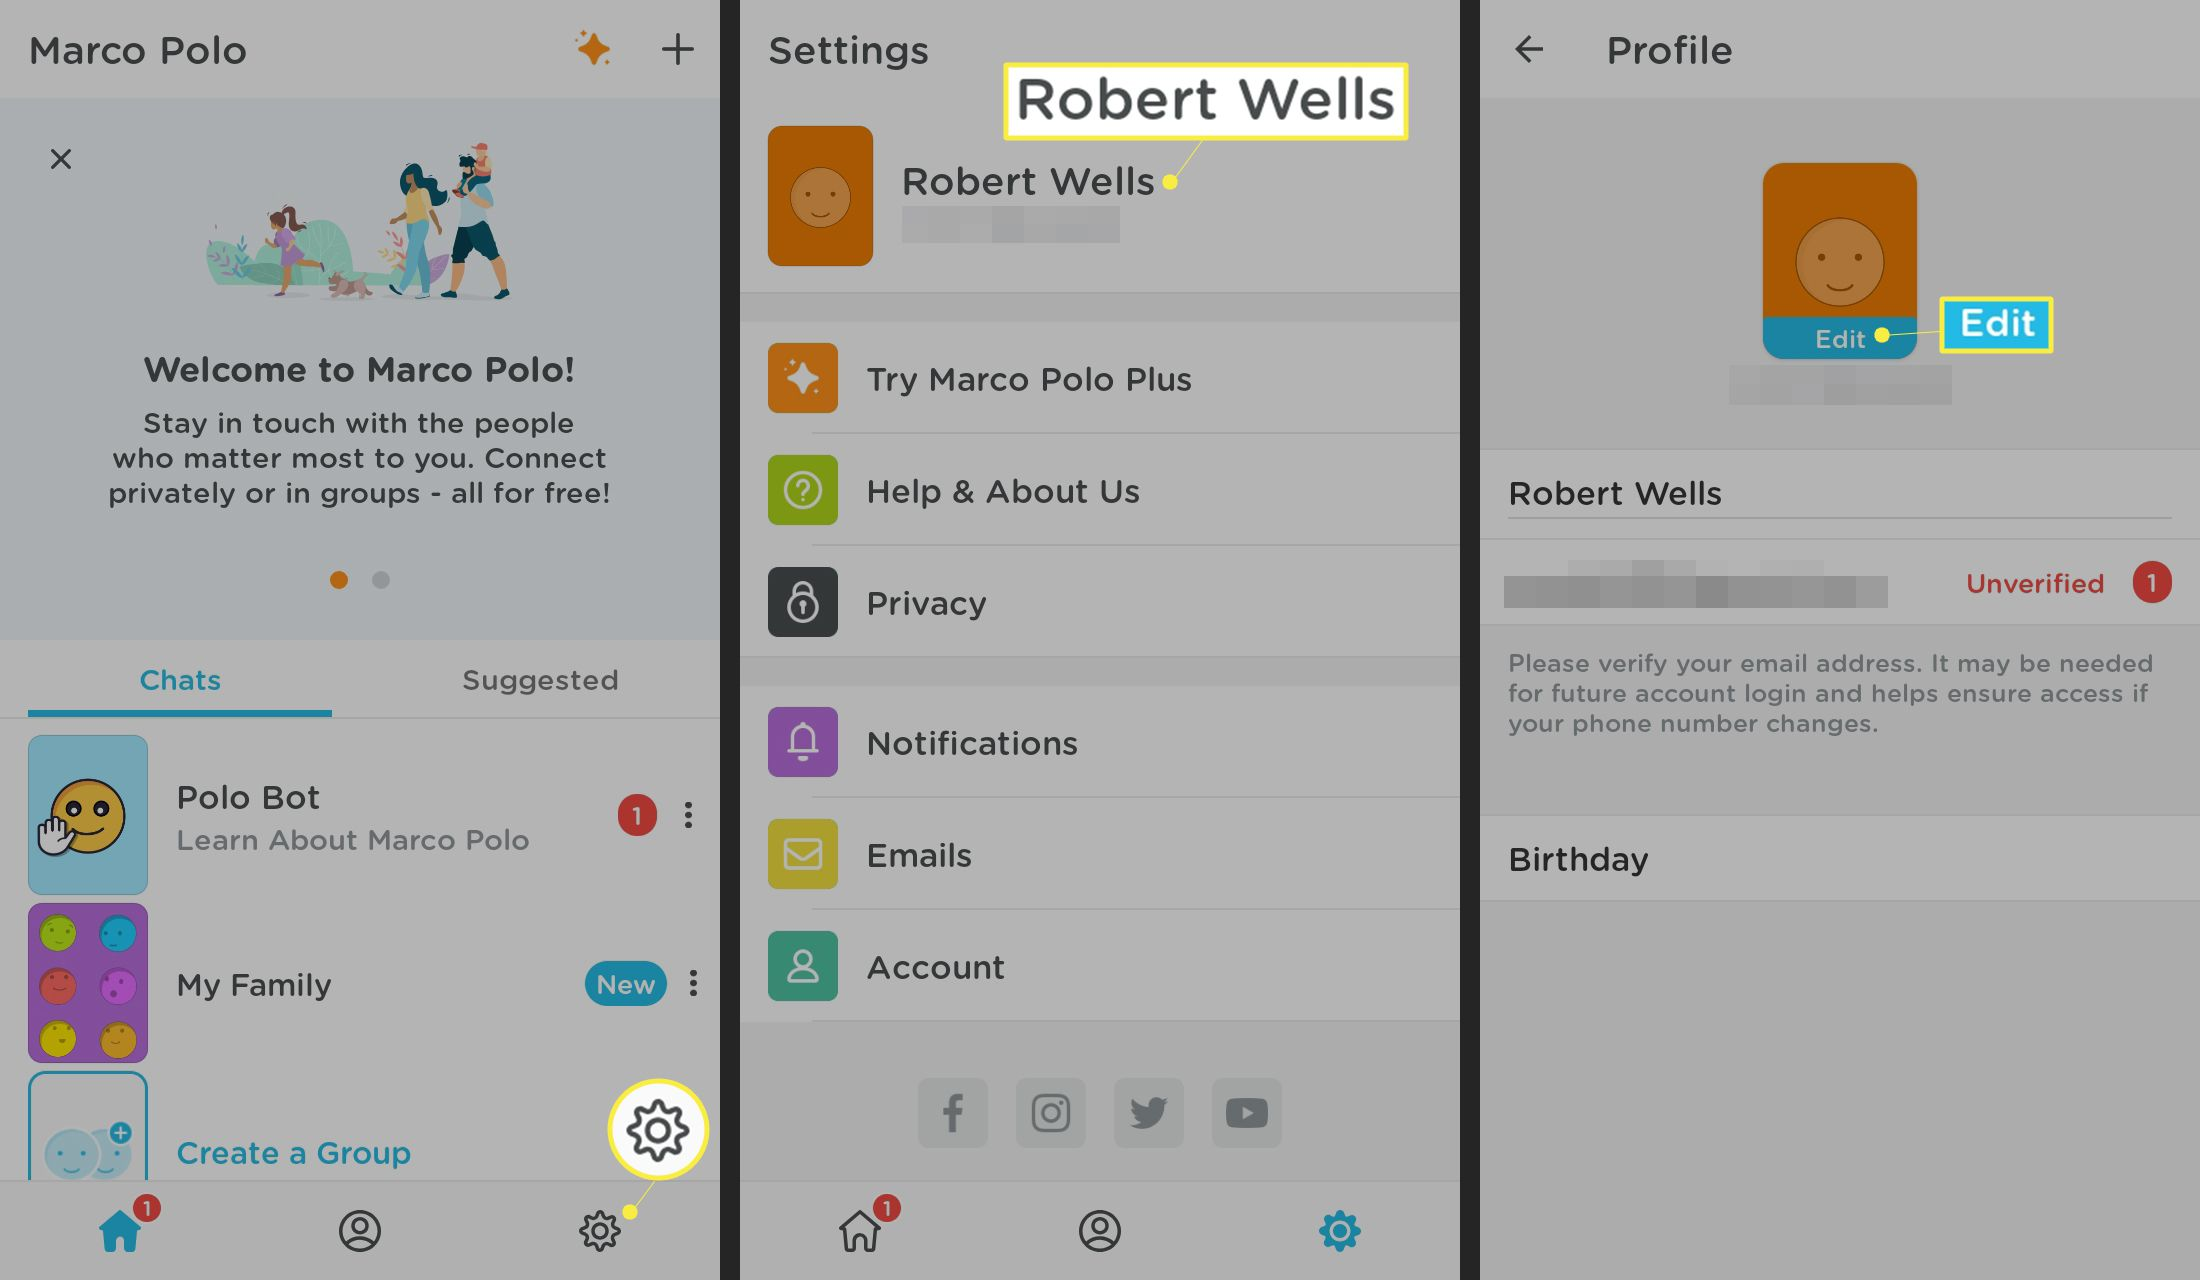 How to acess settings in the Marco Polo app